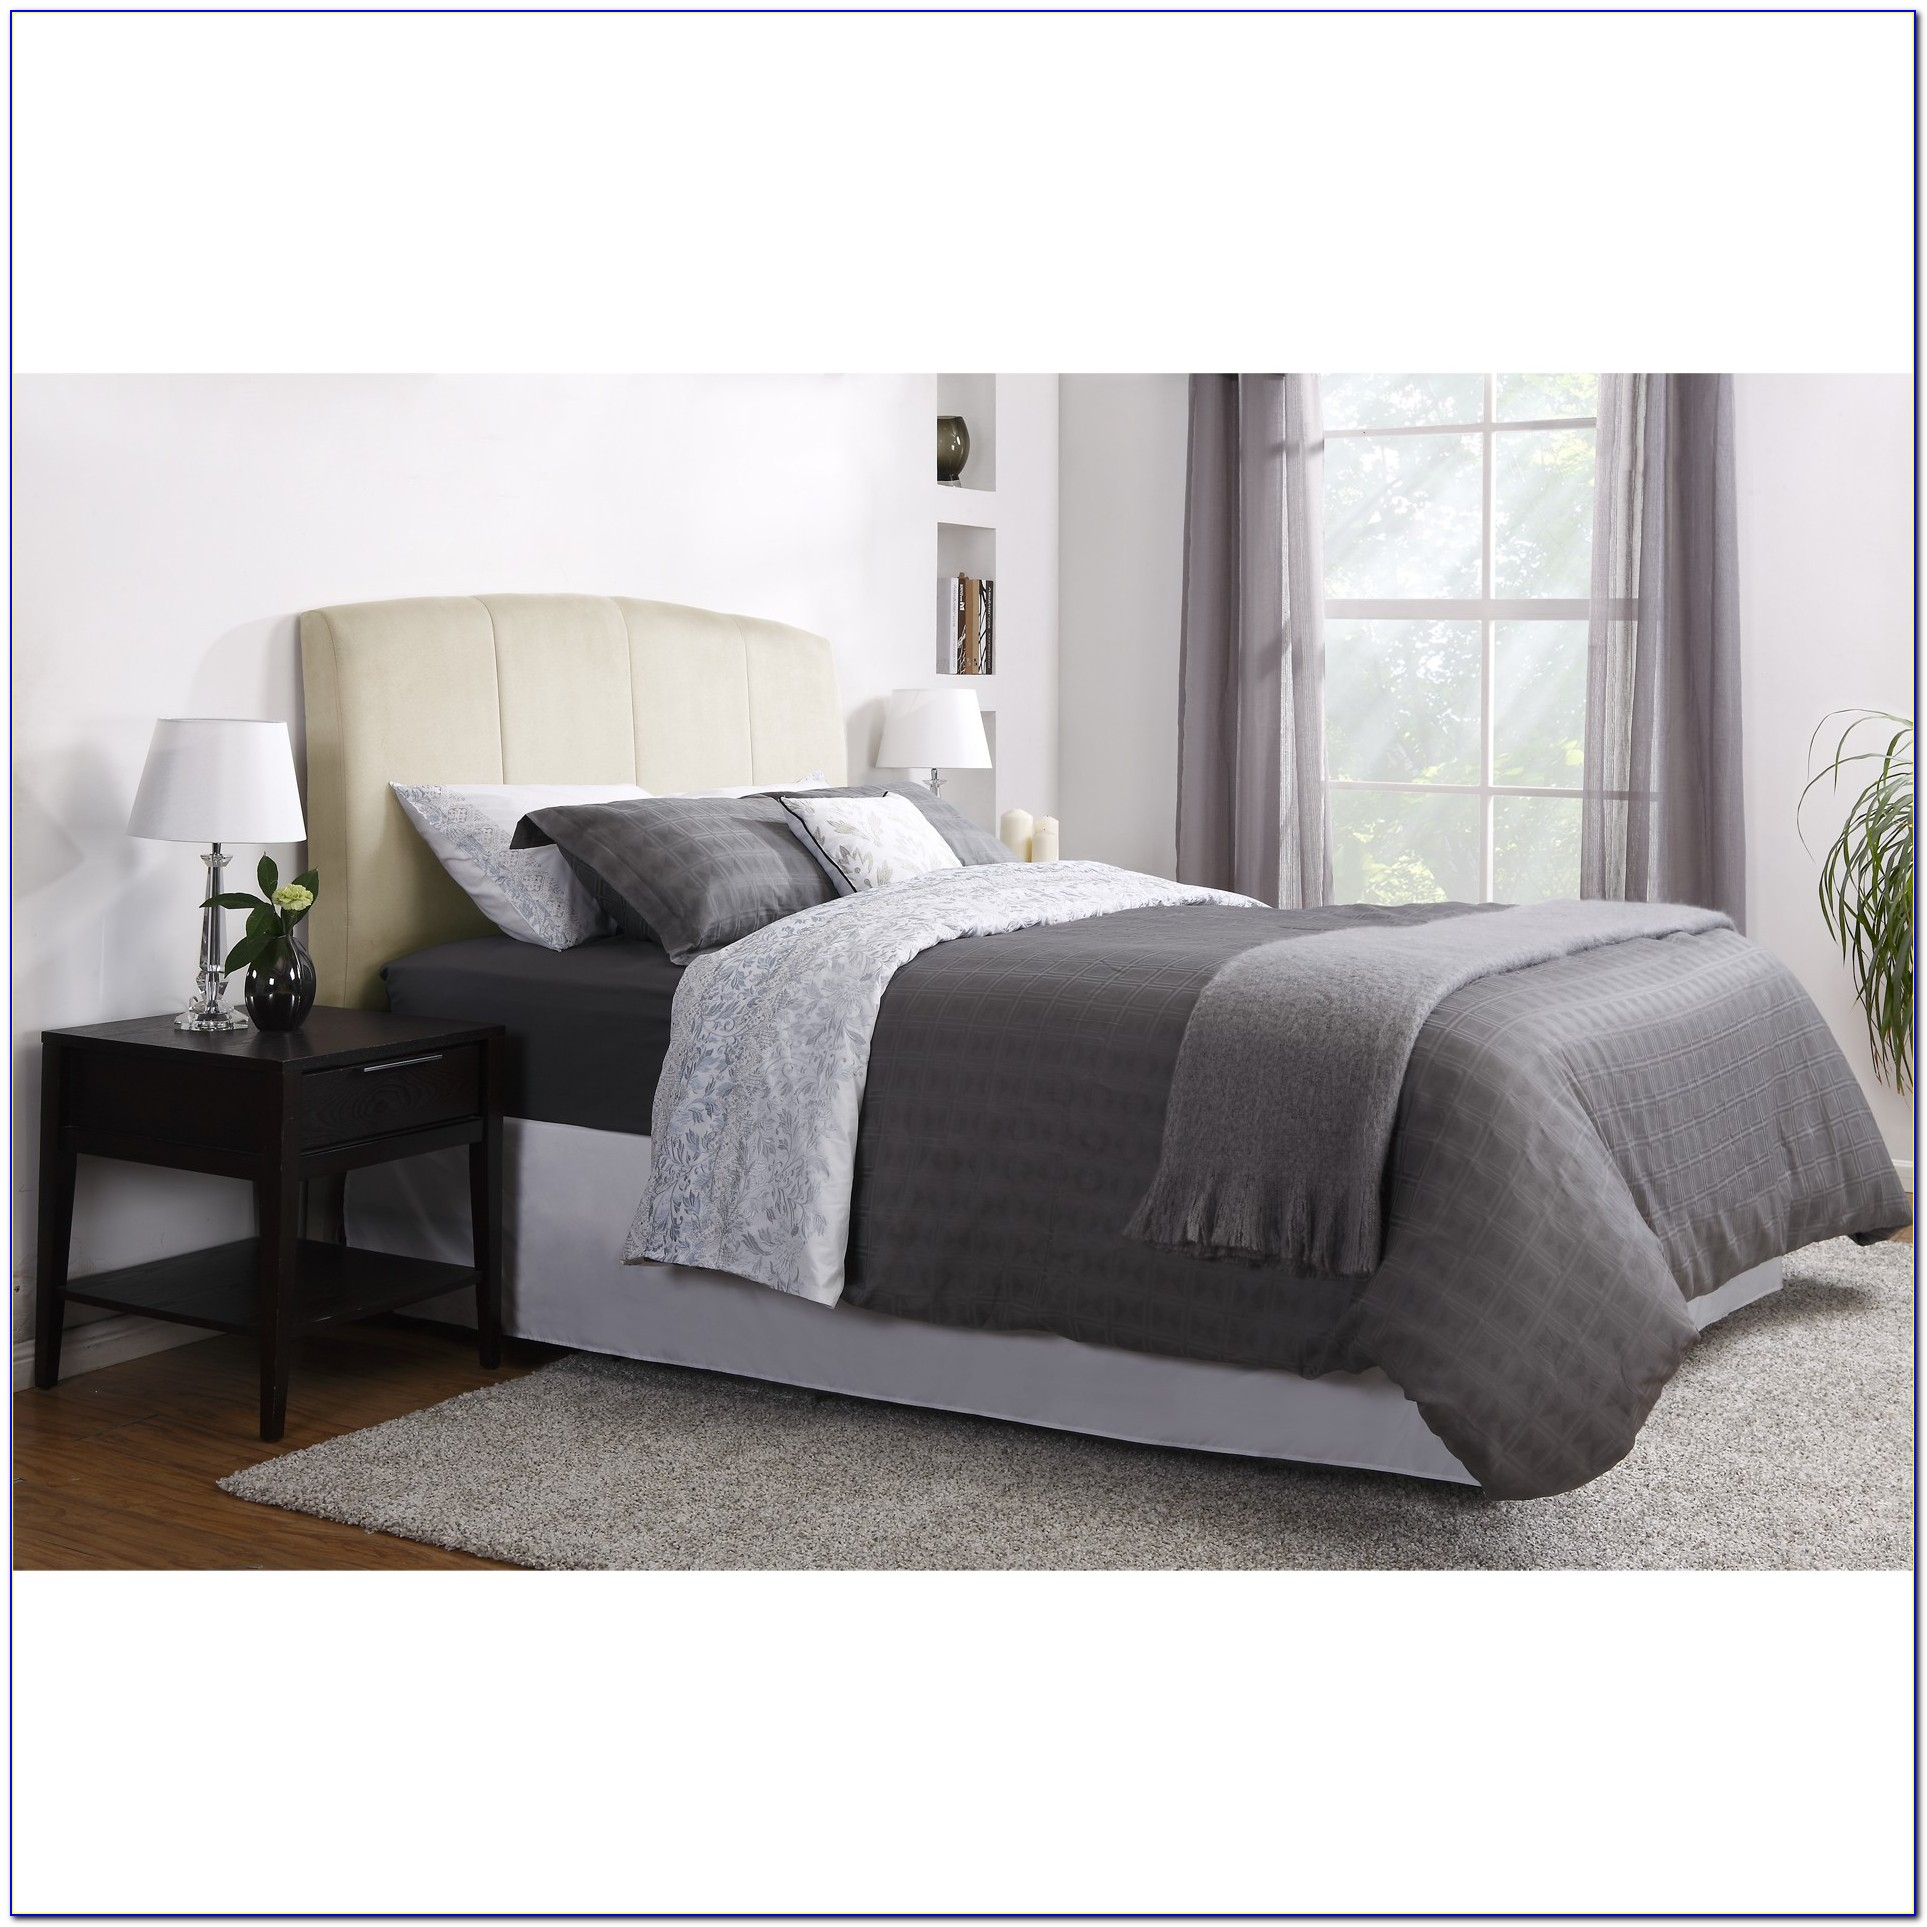 King Size Padded Headboards